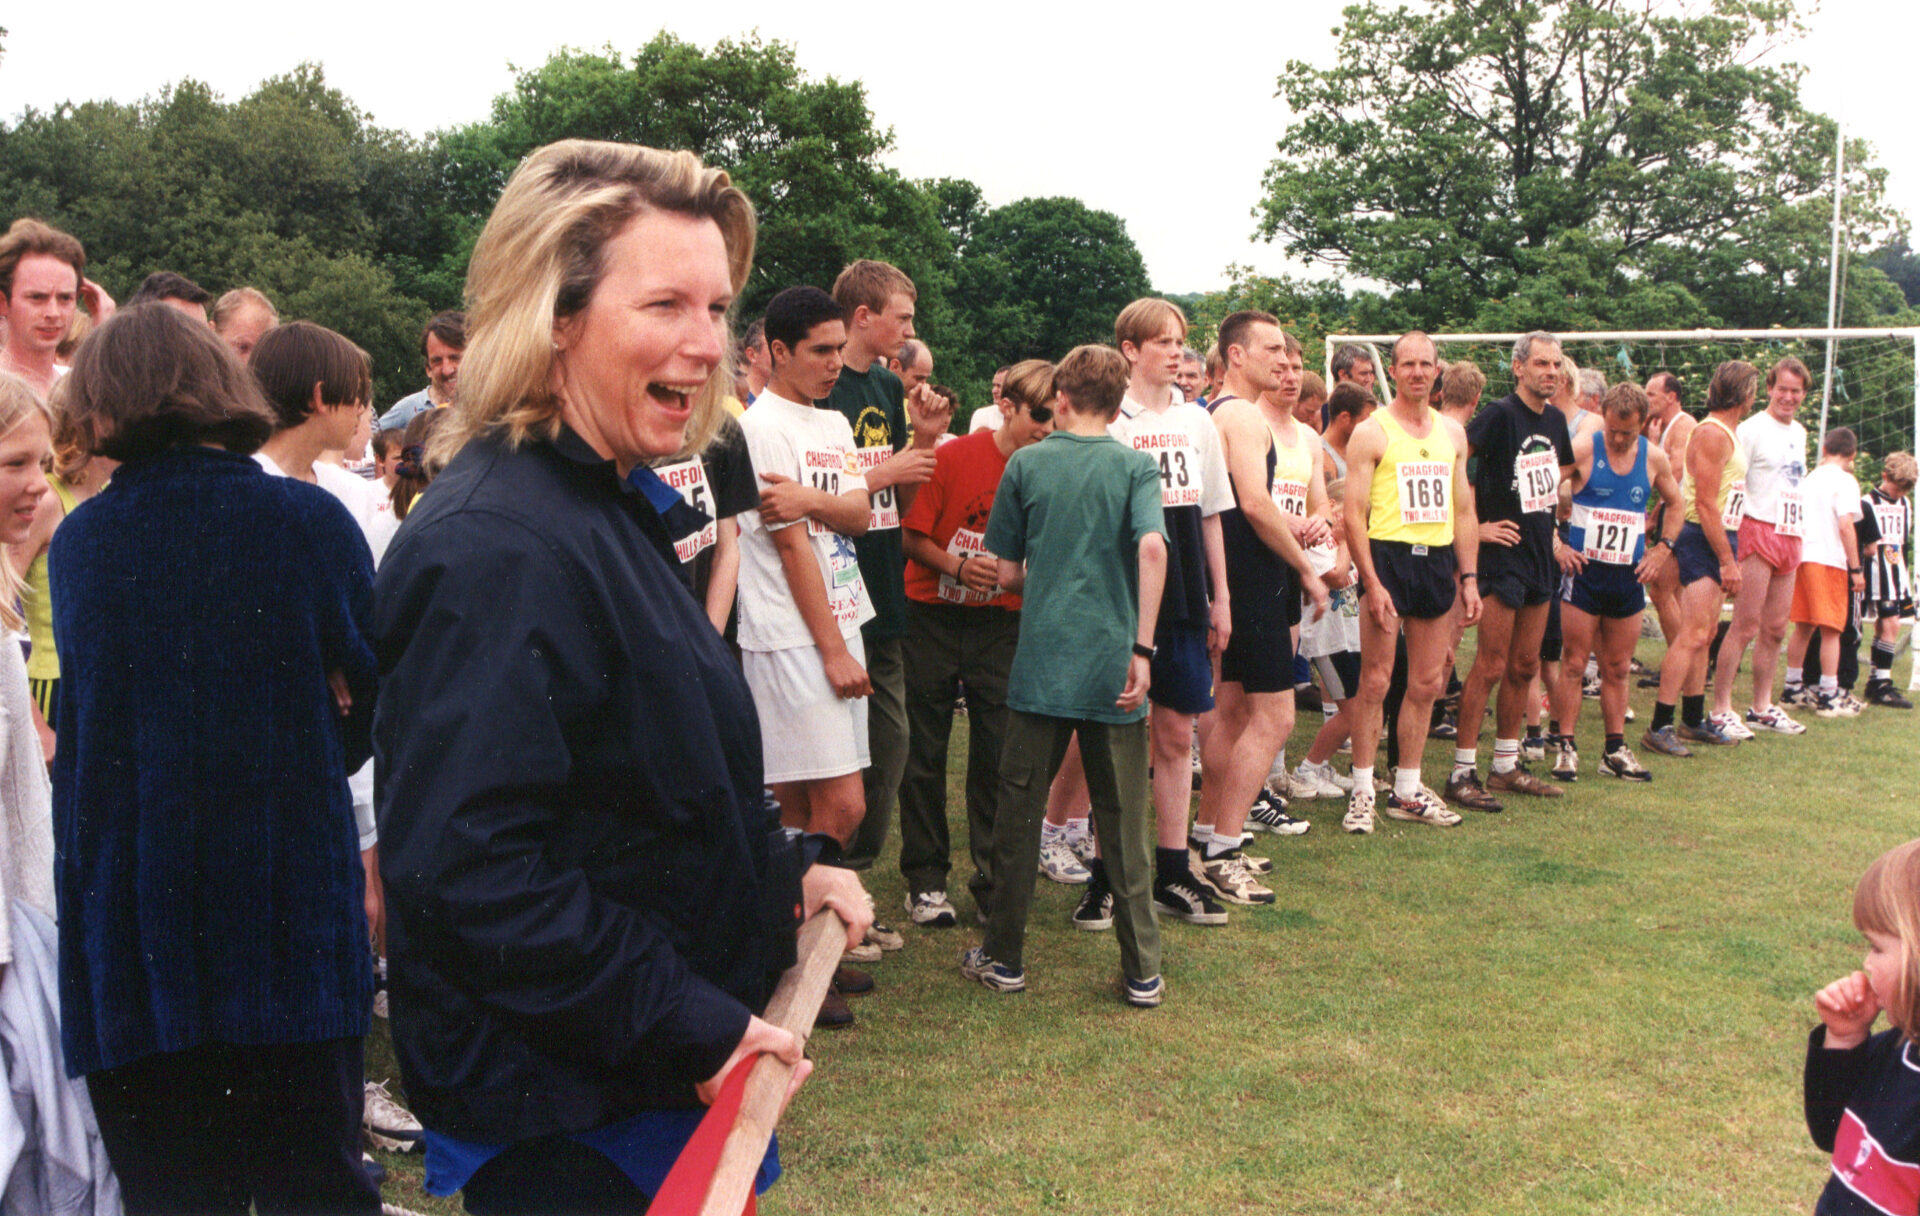 MOUSE OVER PICS TO HALT THE SLIDES. 1998 Jennifer Saunders with flag ready to start the race.